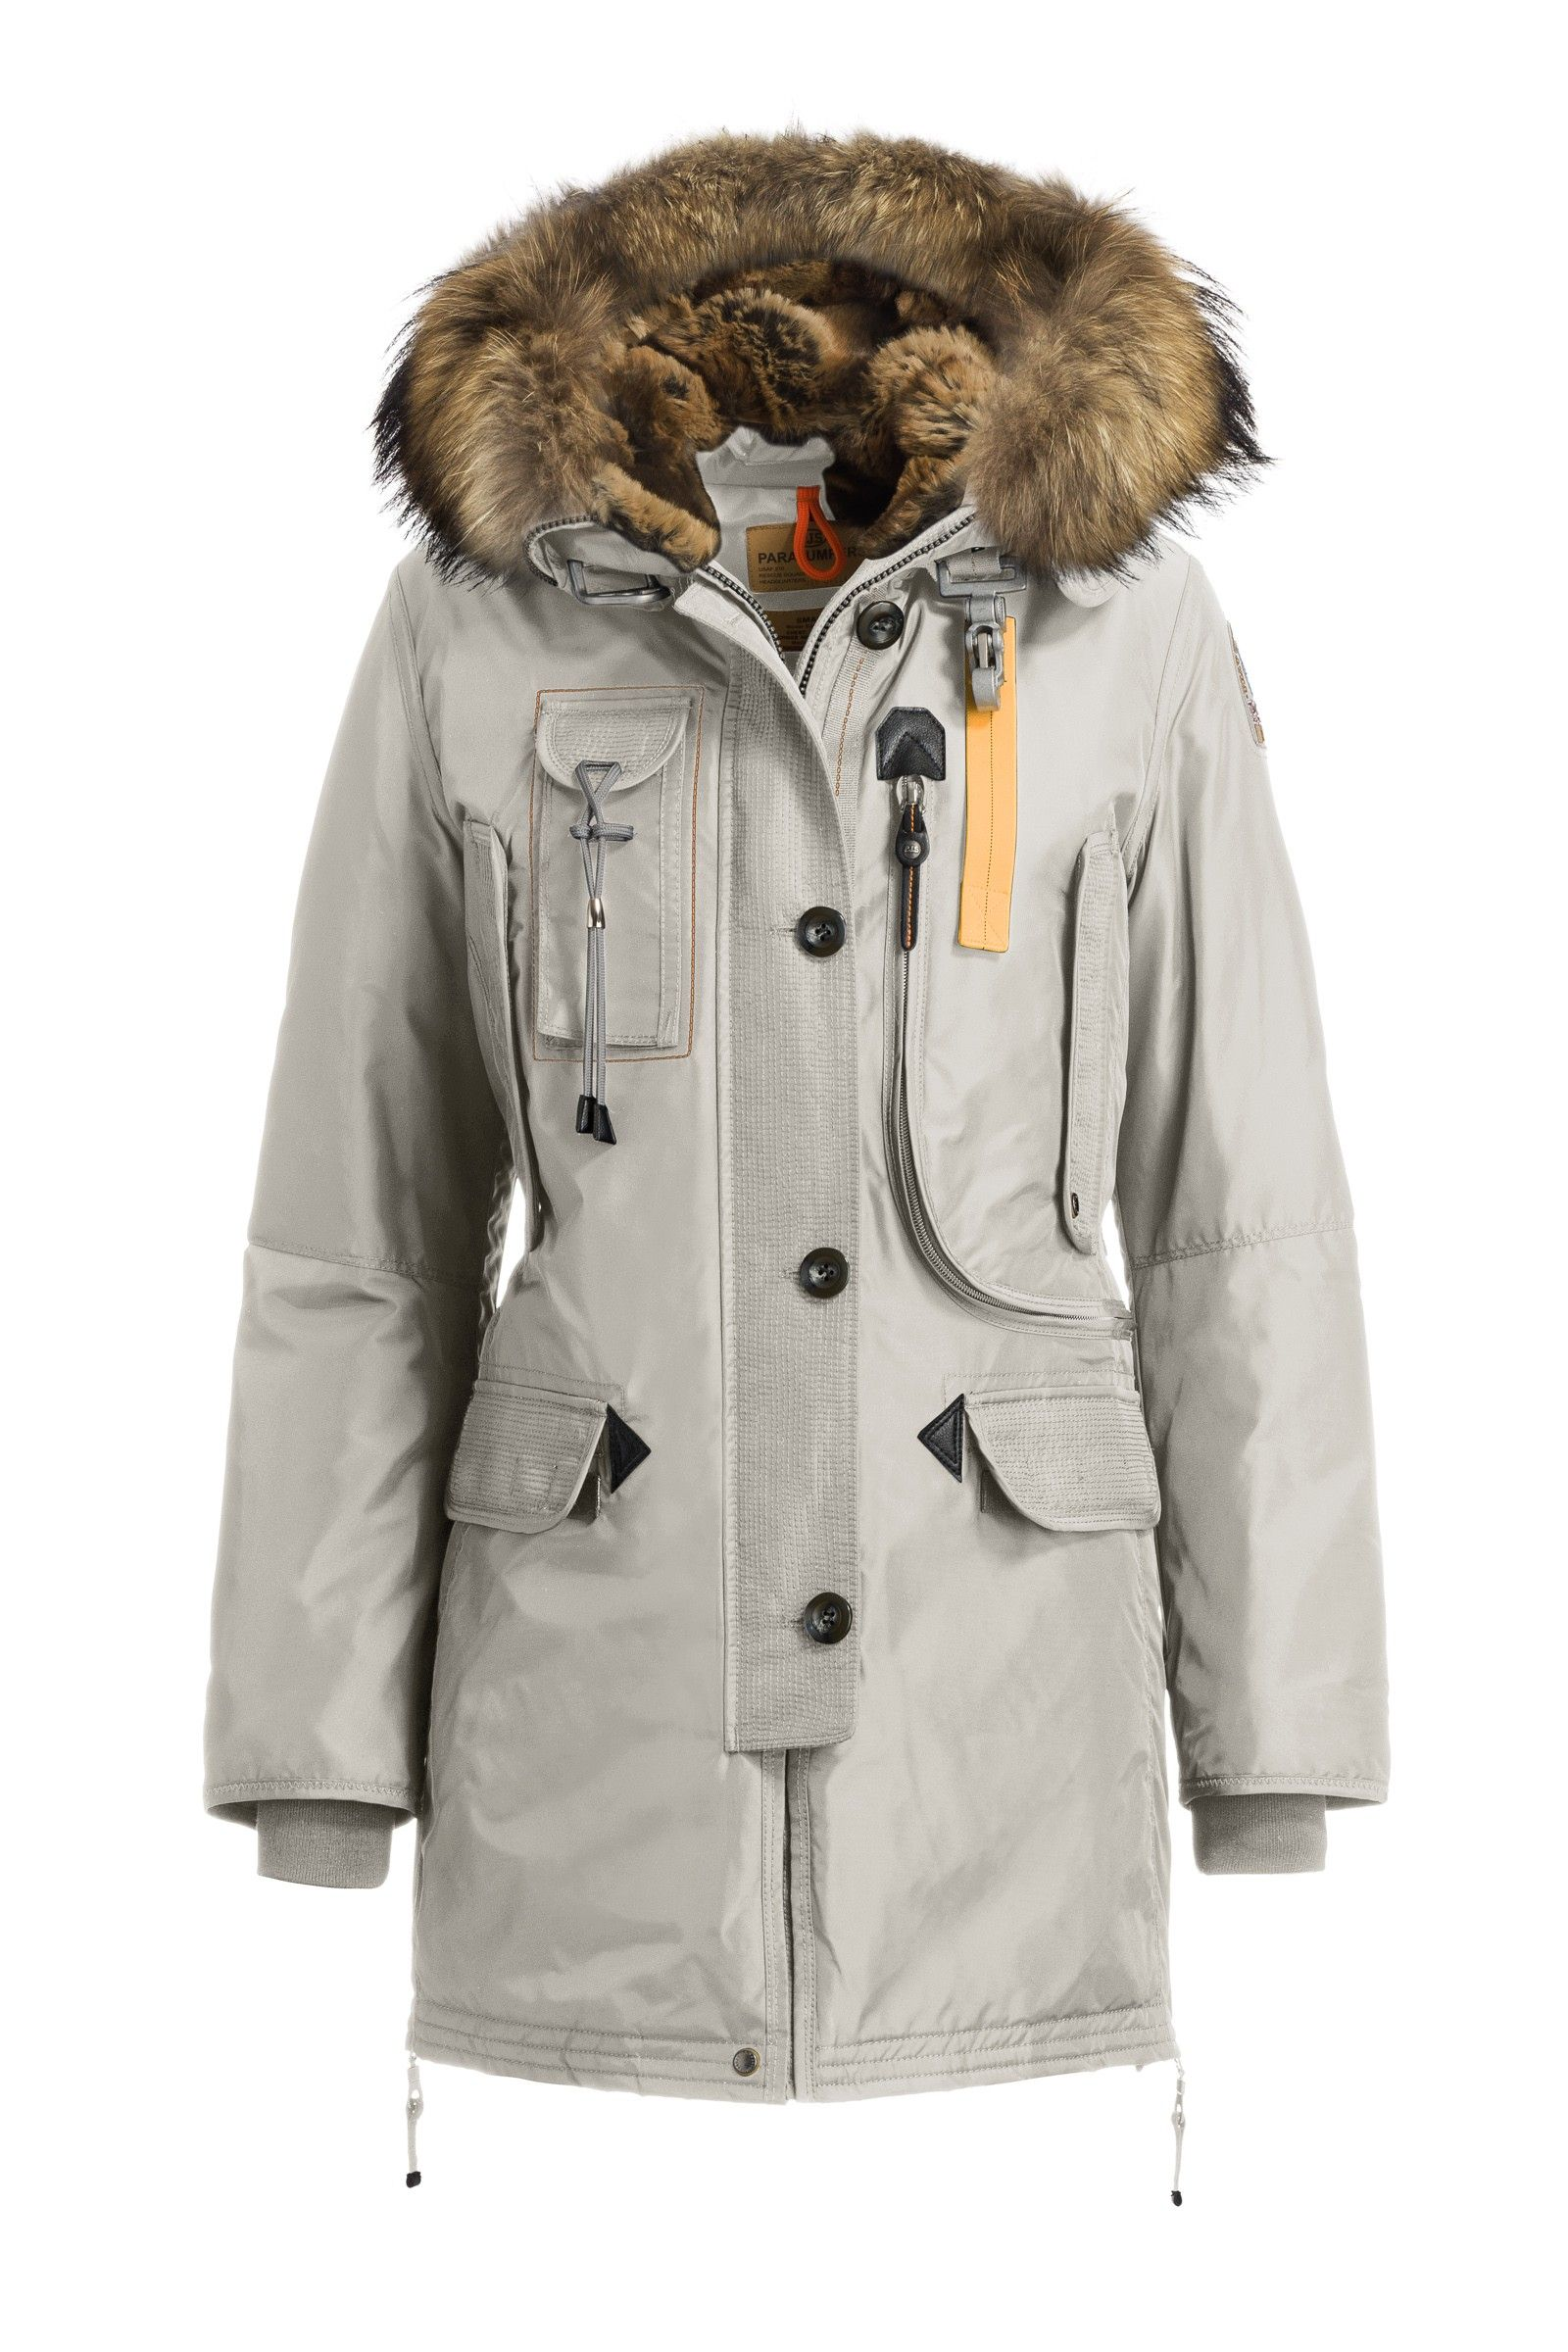 low priced 80fdf 224db KODIAK - masterpiece anthology - Outerwear - WOMAN ...